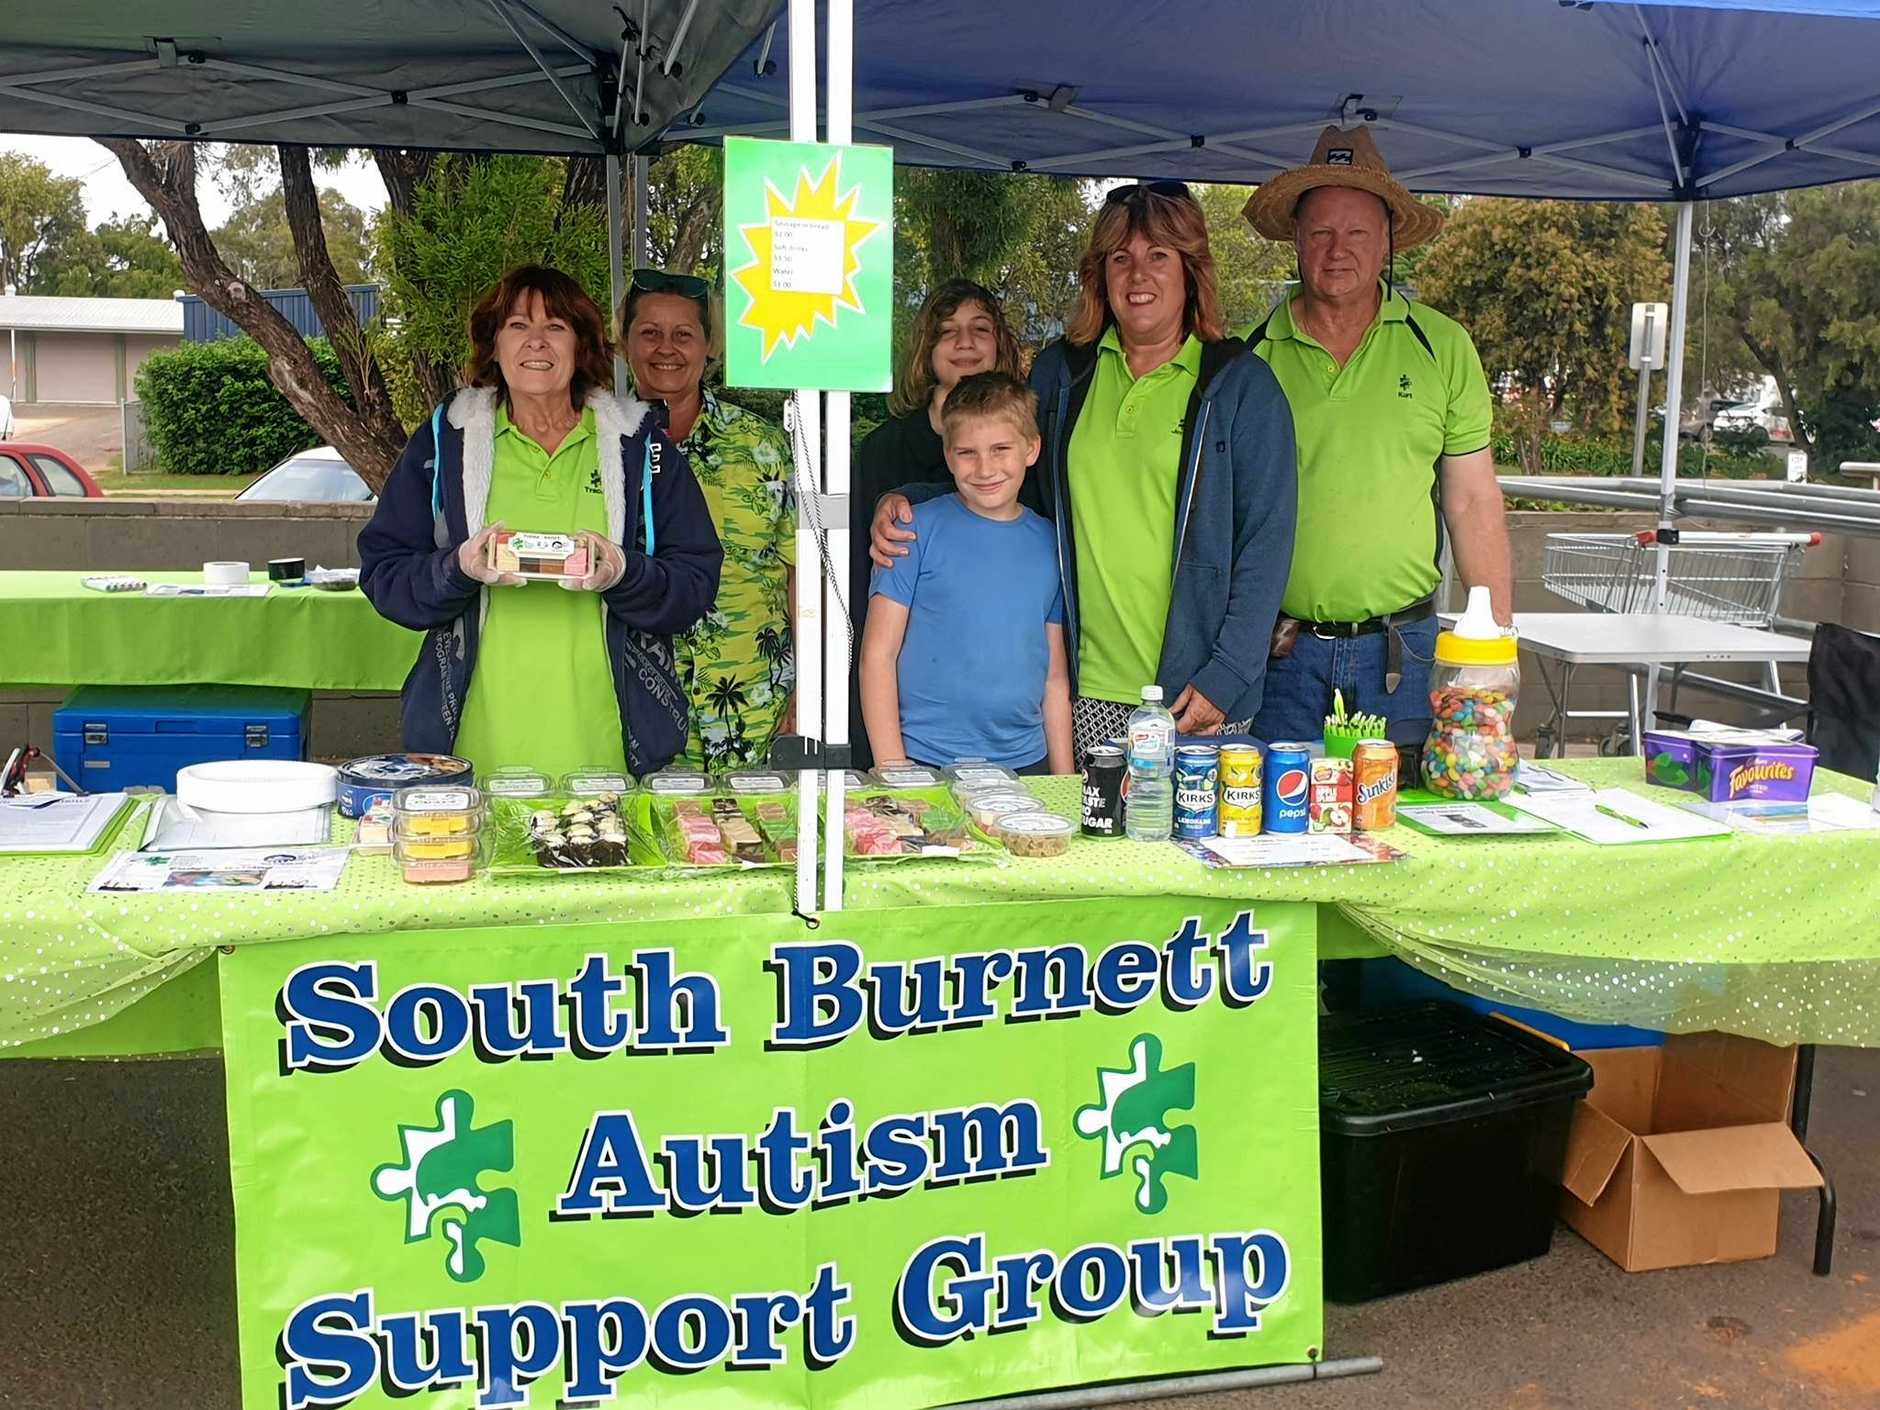 The South Burnett Autism Support Group is bringing a conference to Nanango to help people learn more about autism.